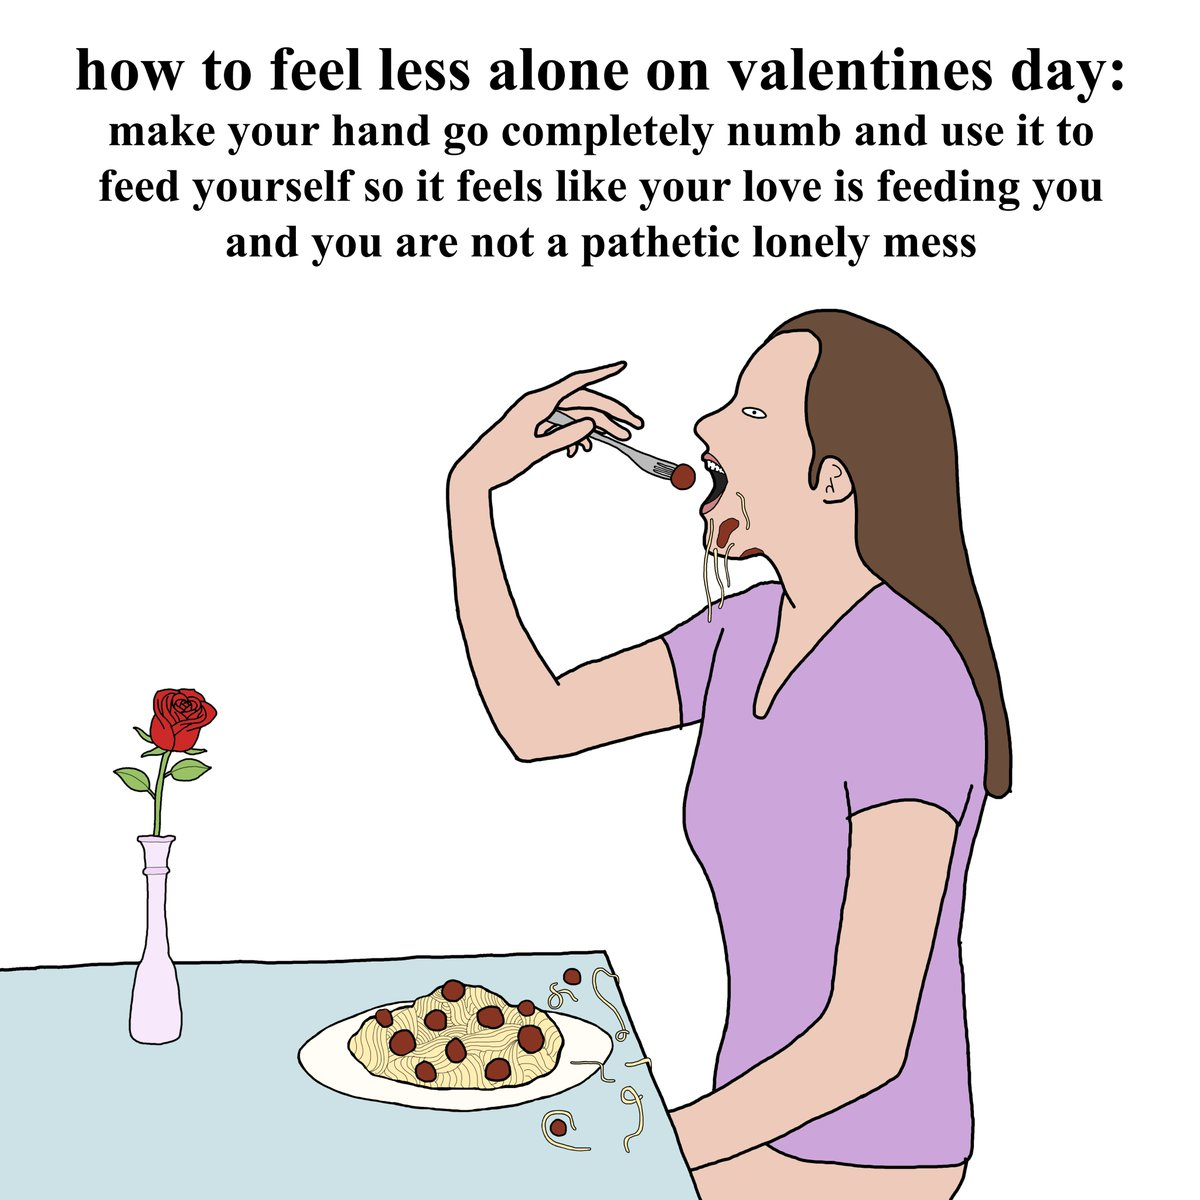 RT @getbentsaggy: how to feel less alone on valentines day xox https://t.co/yL31szCdJC